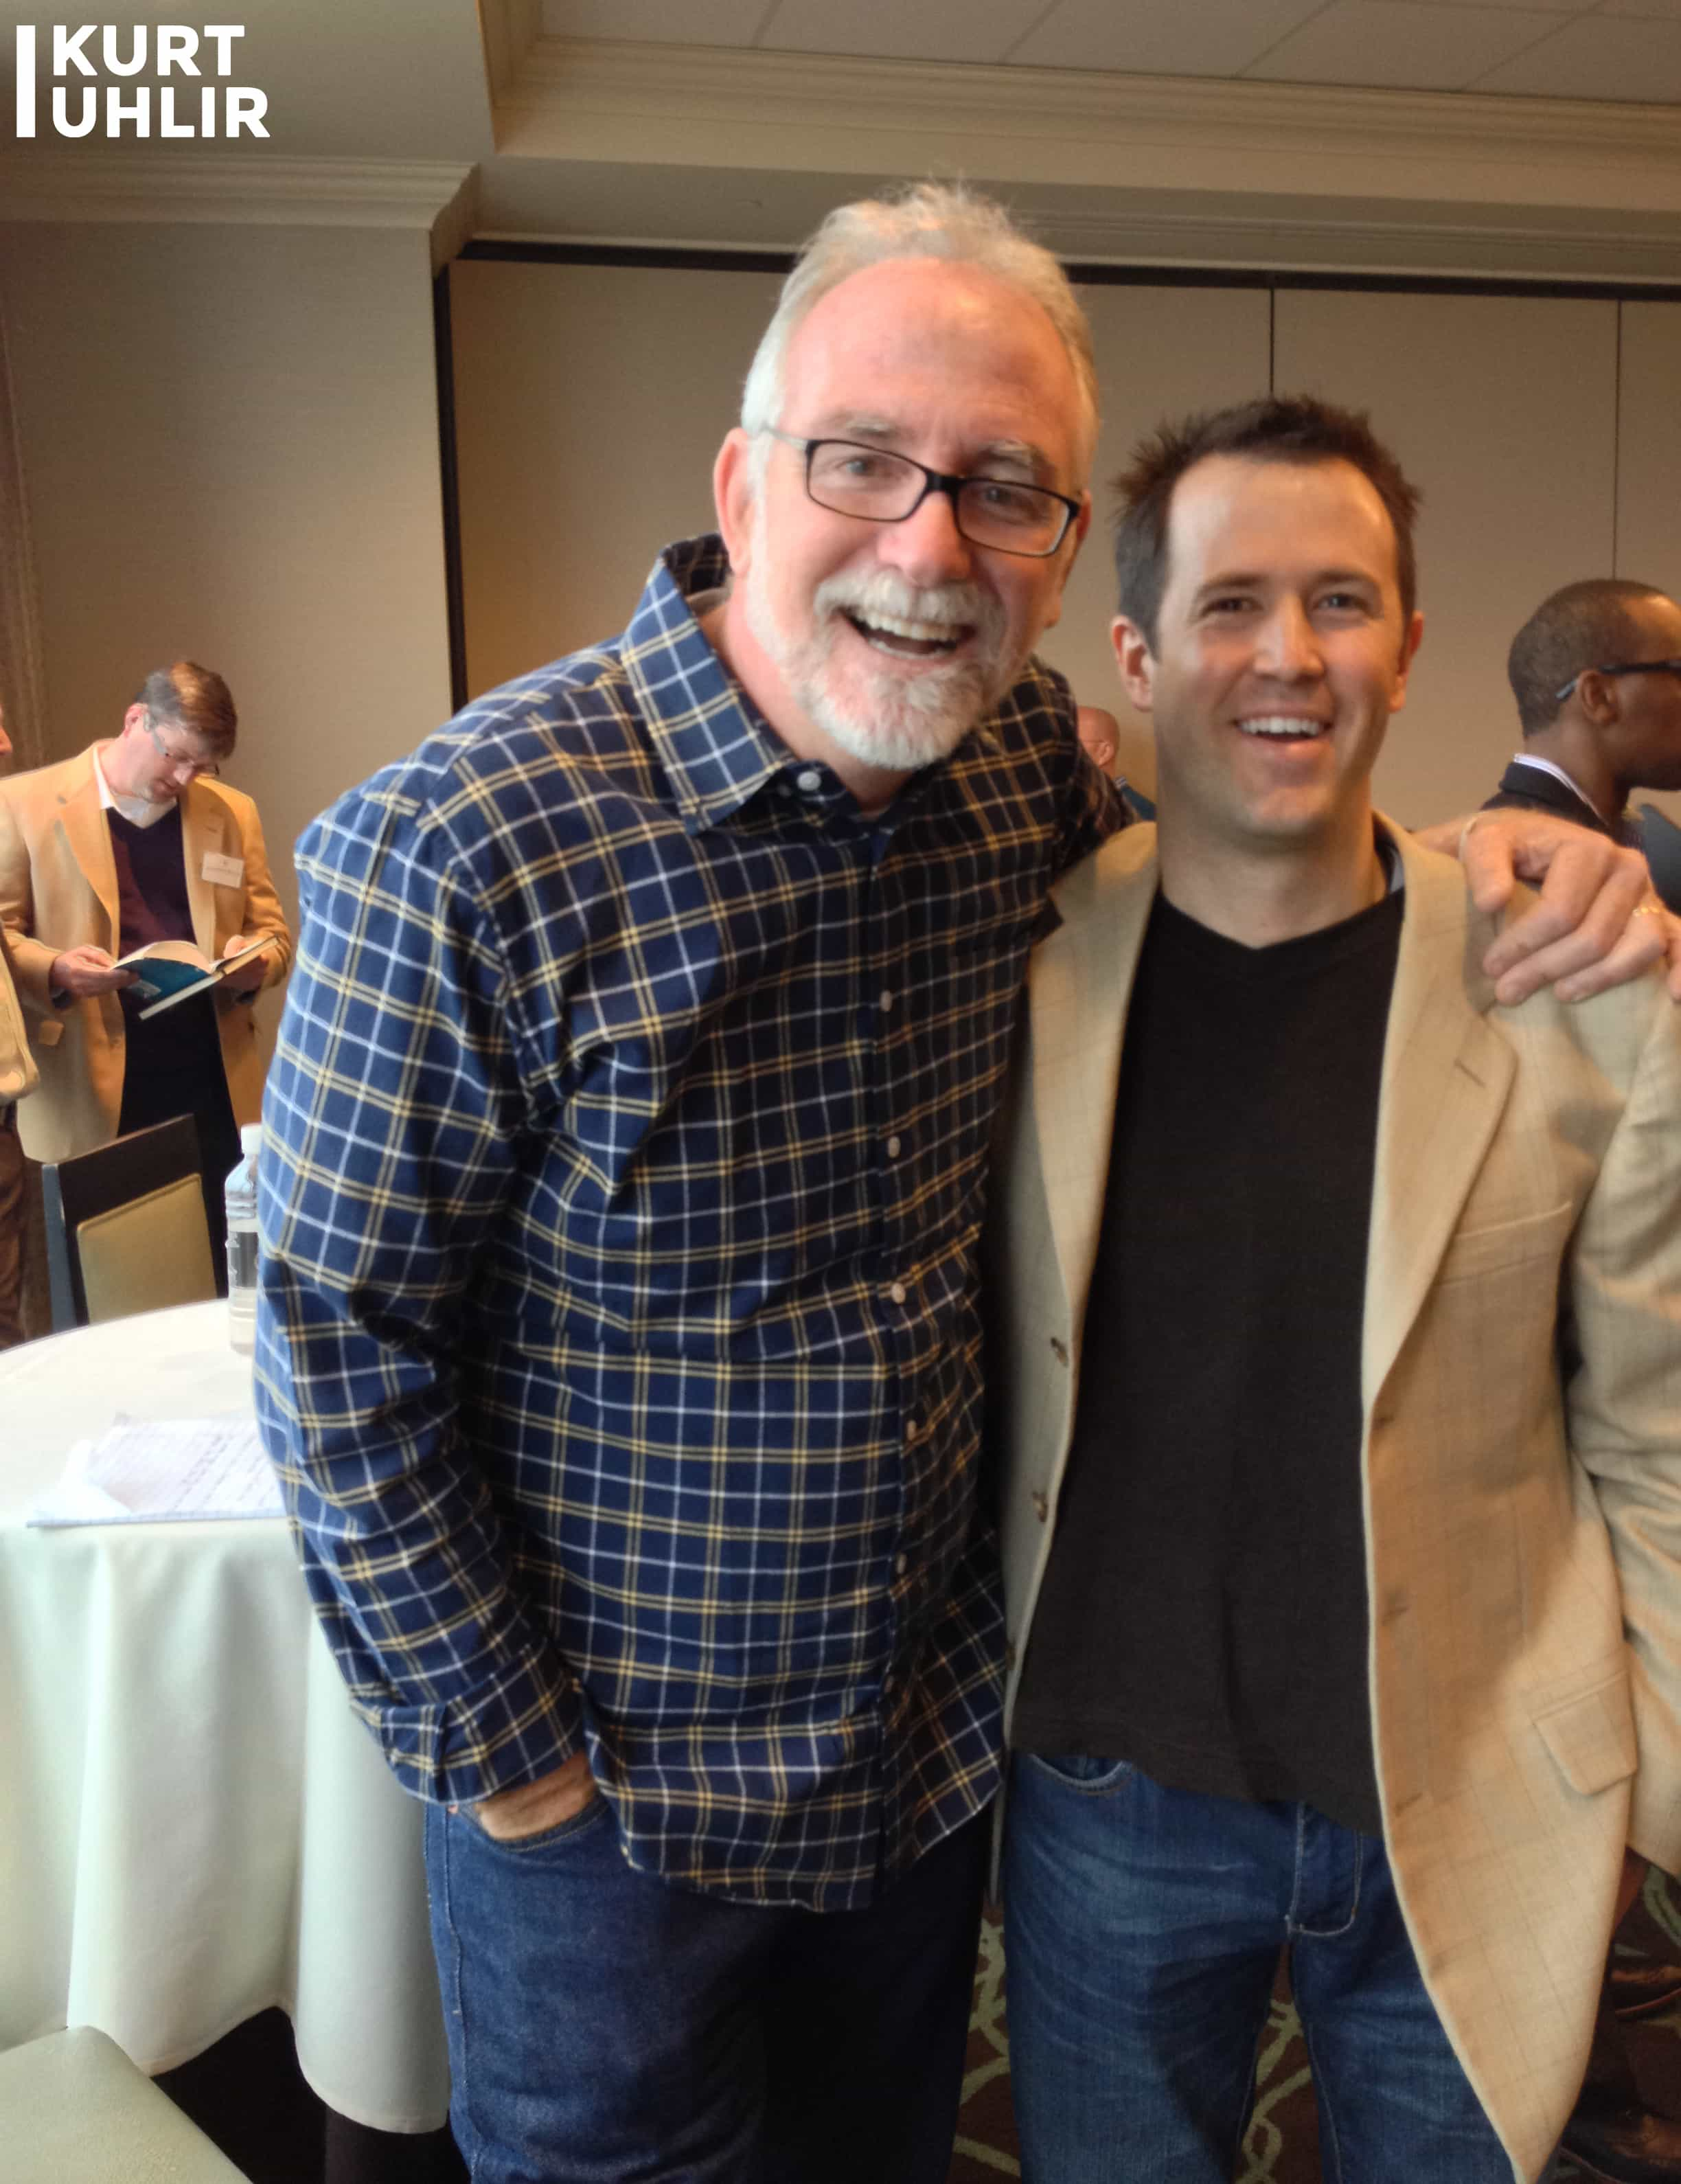 Kurt Uhlir and New York Times Best-Selling Author Bob Goff